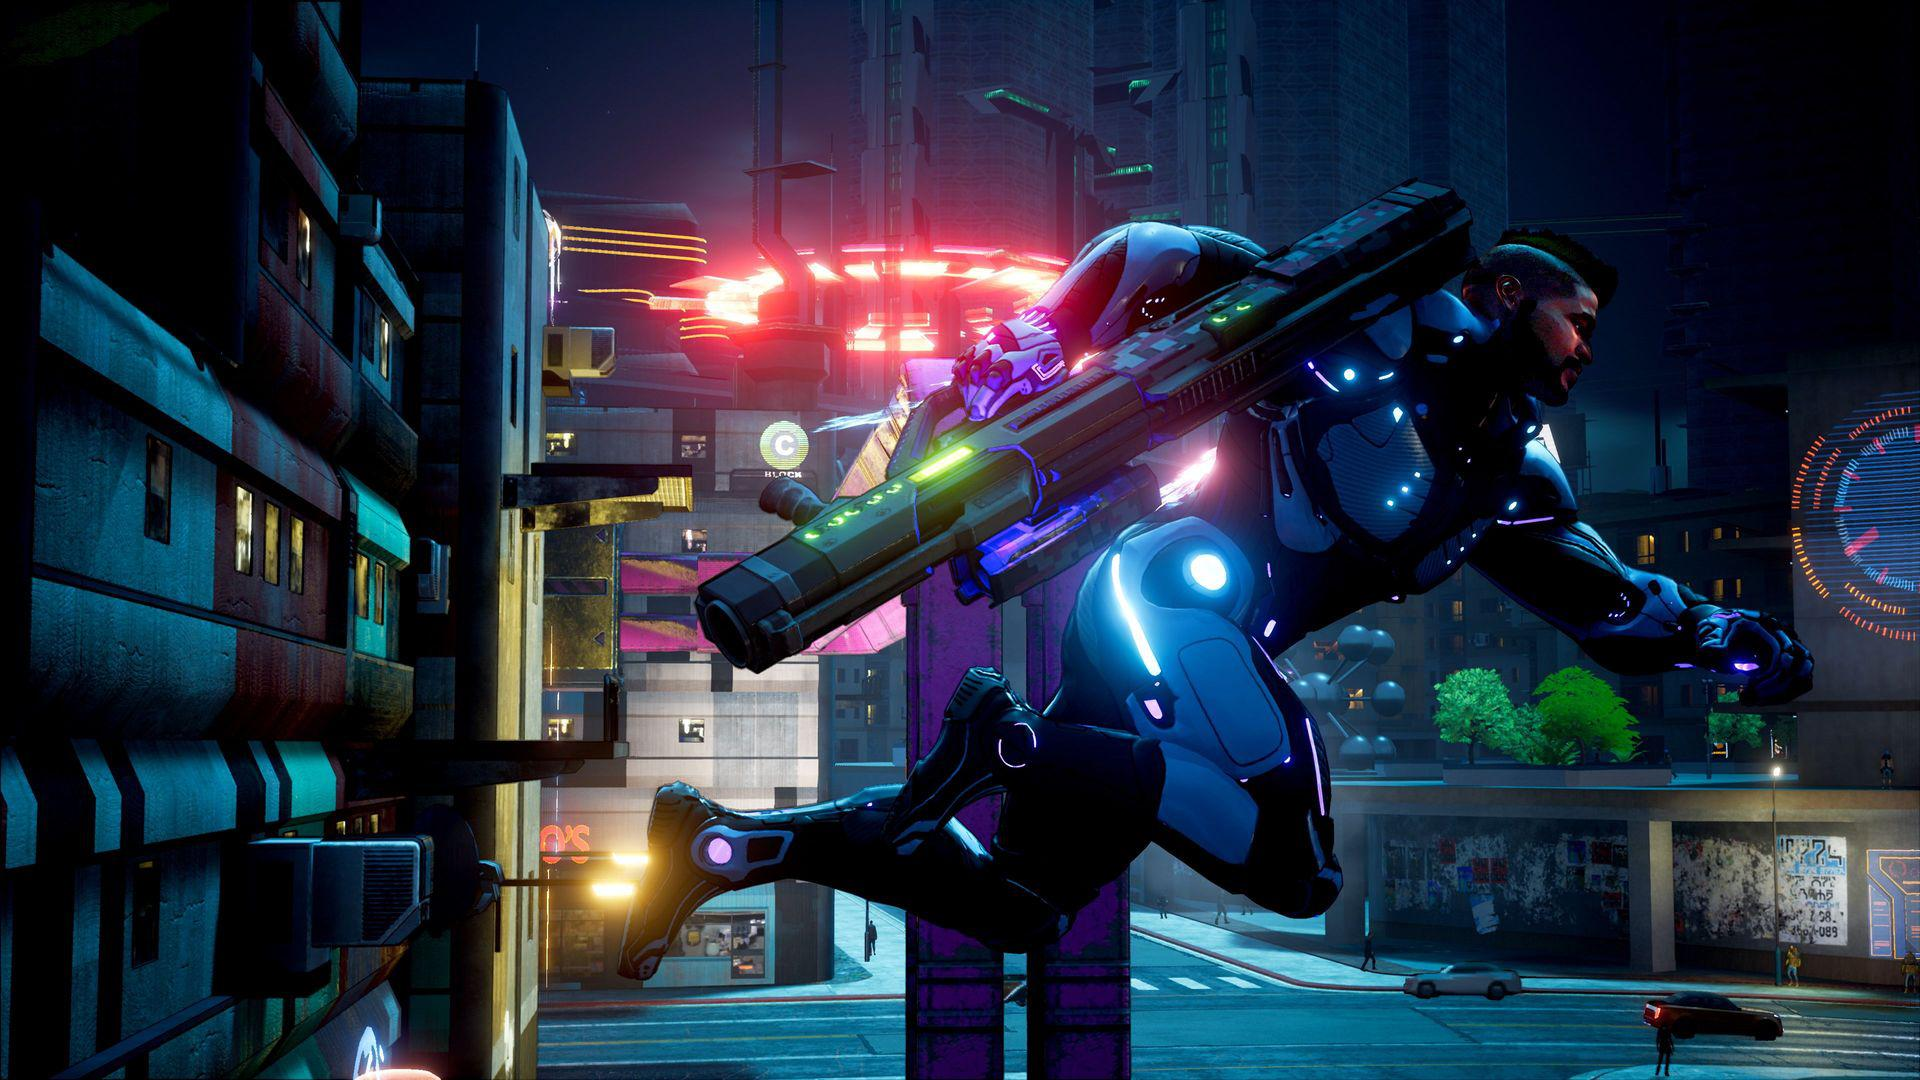 The latest 4K screenshots show off Crackdown's trademark cell-shaded style